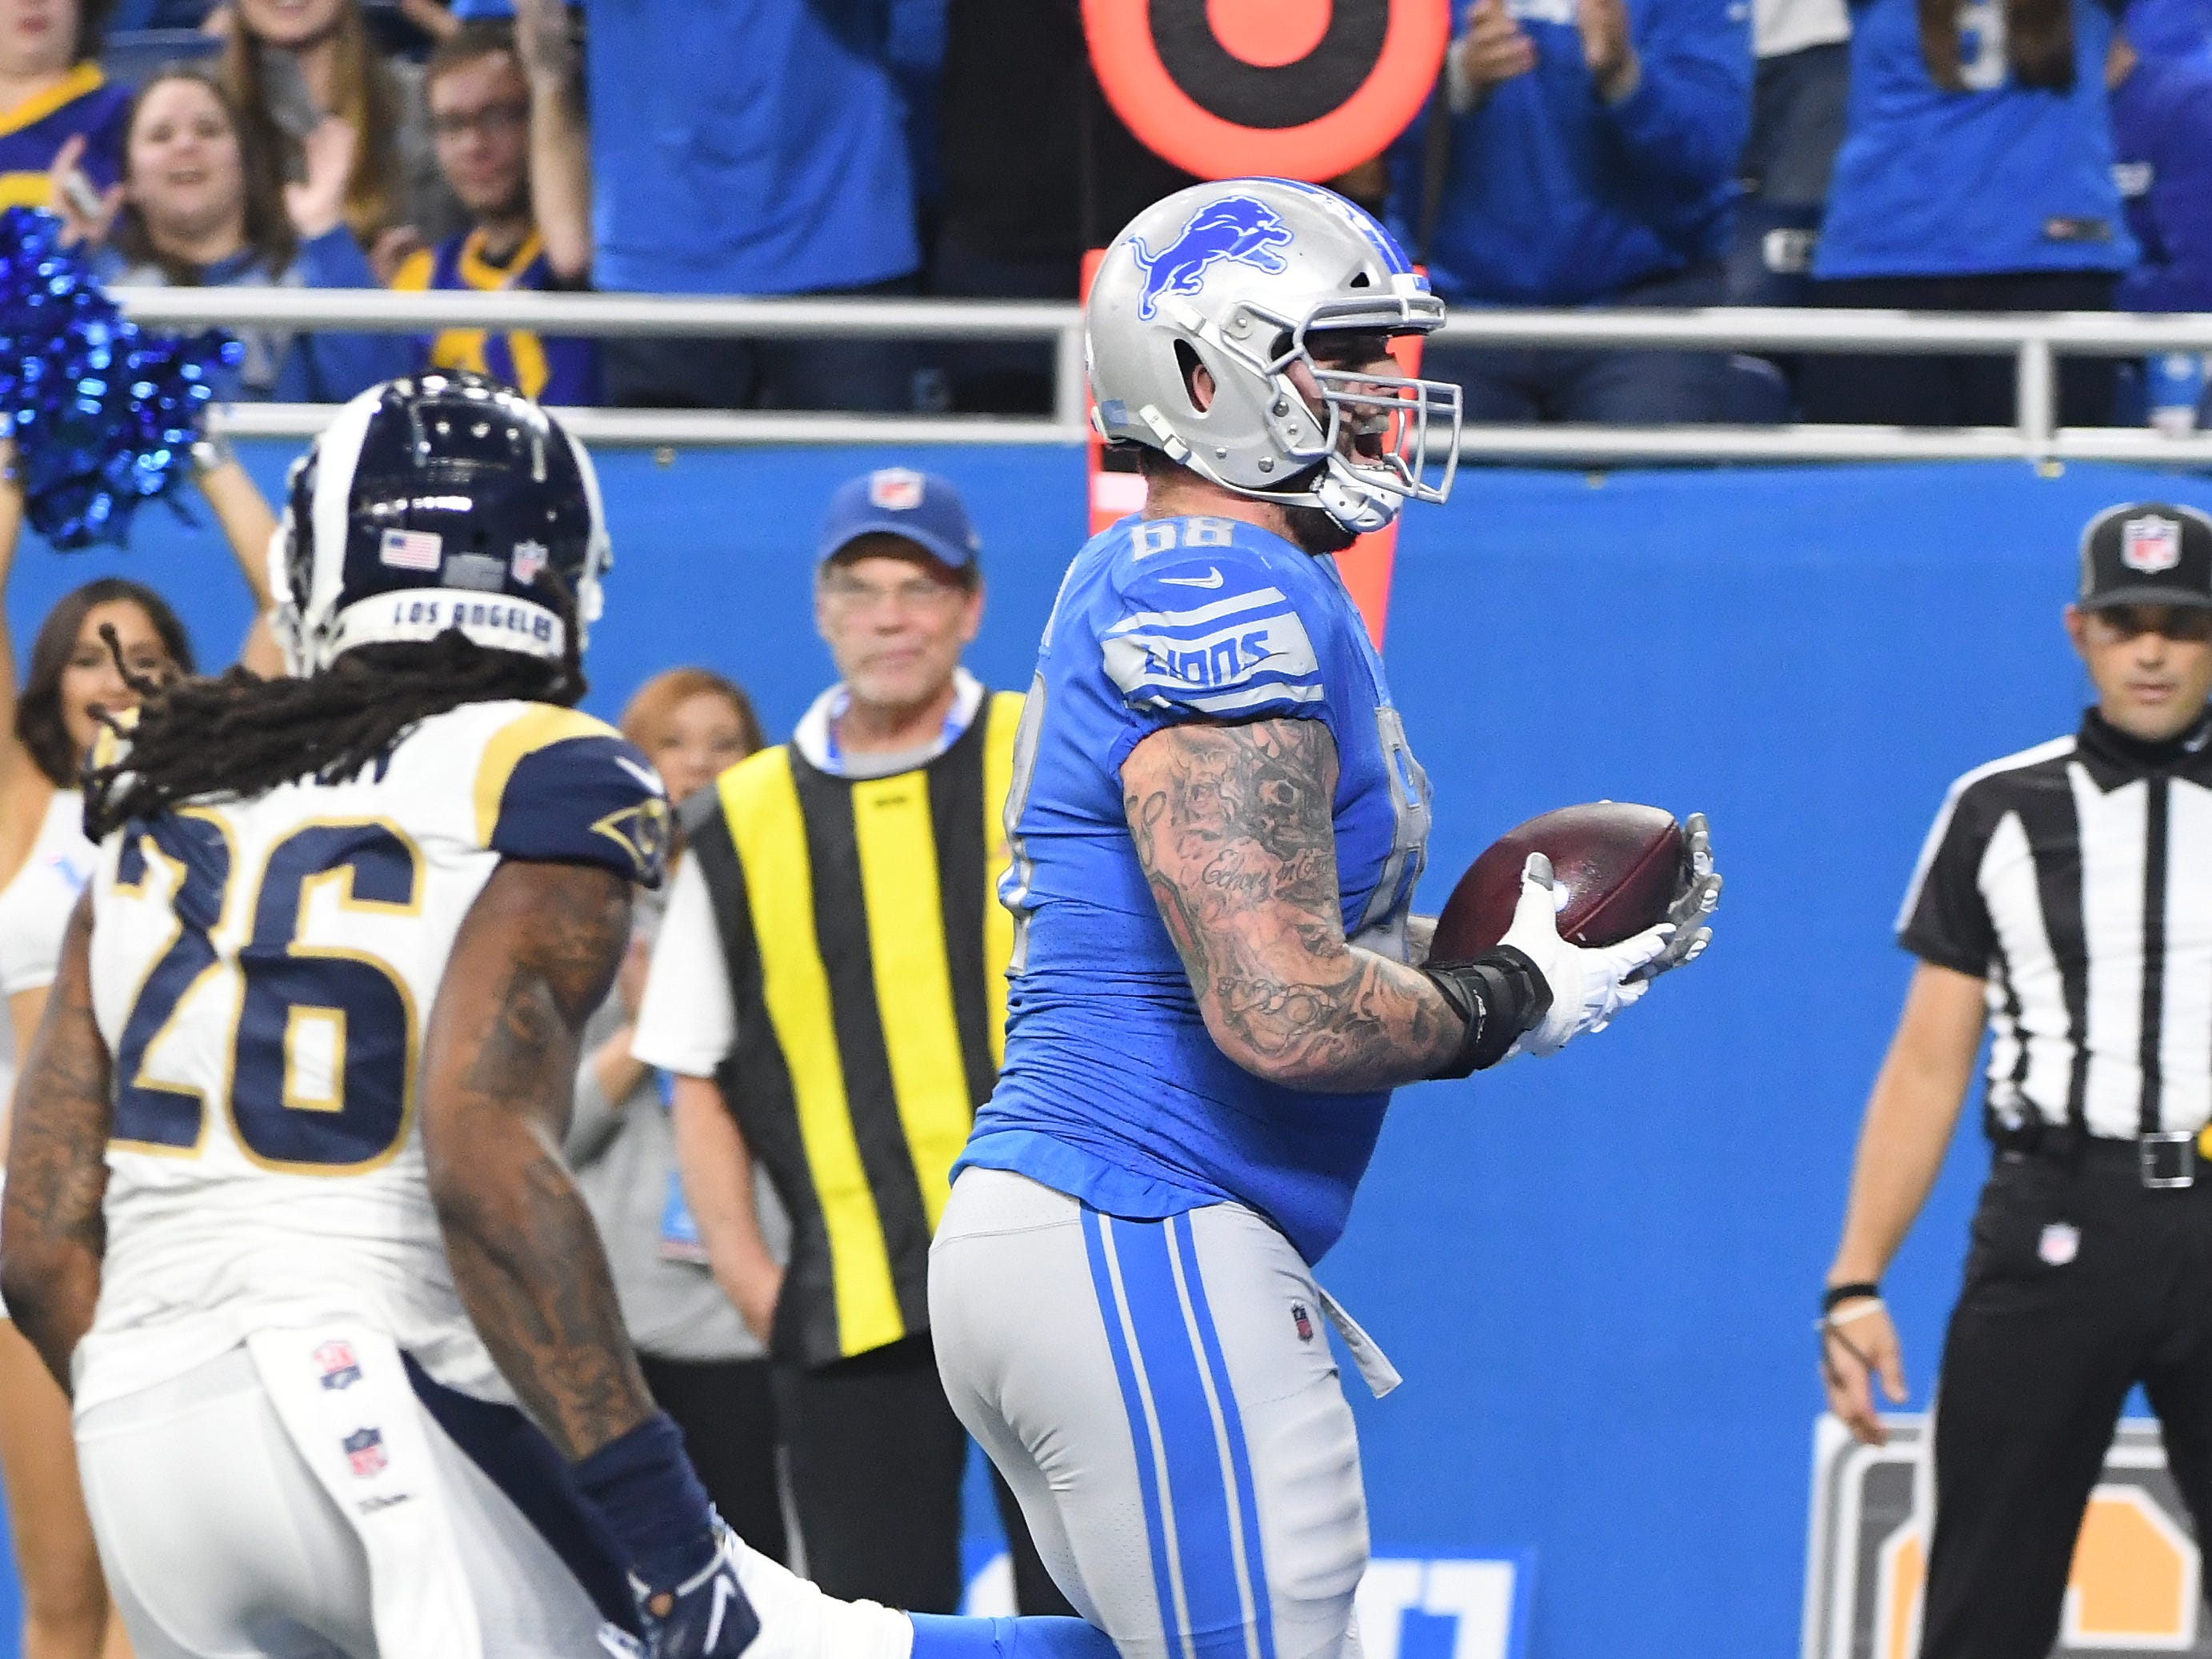 Lions tackle Taylor Decker runs into the end zone for a touchdown in the third quarter.